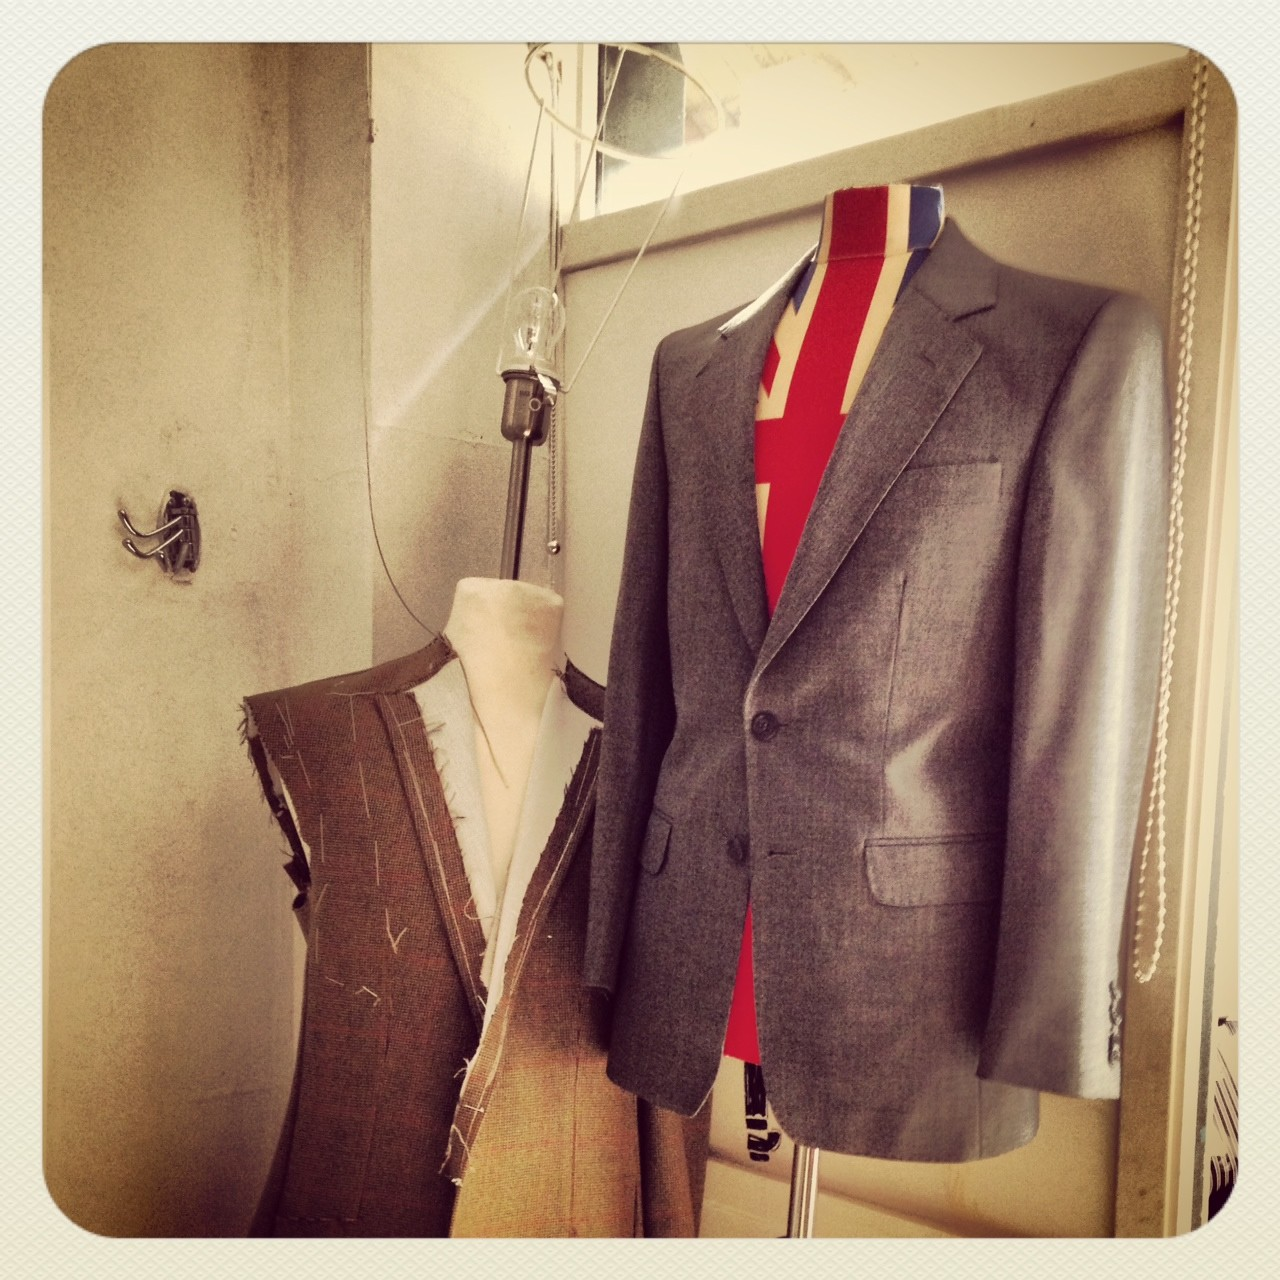 An alternative use for Savile Row bespoke tailoring!